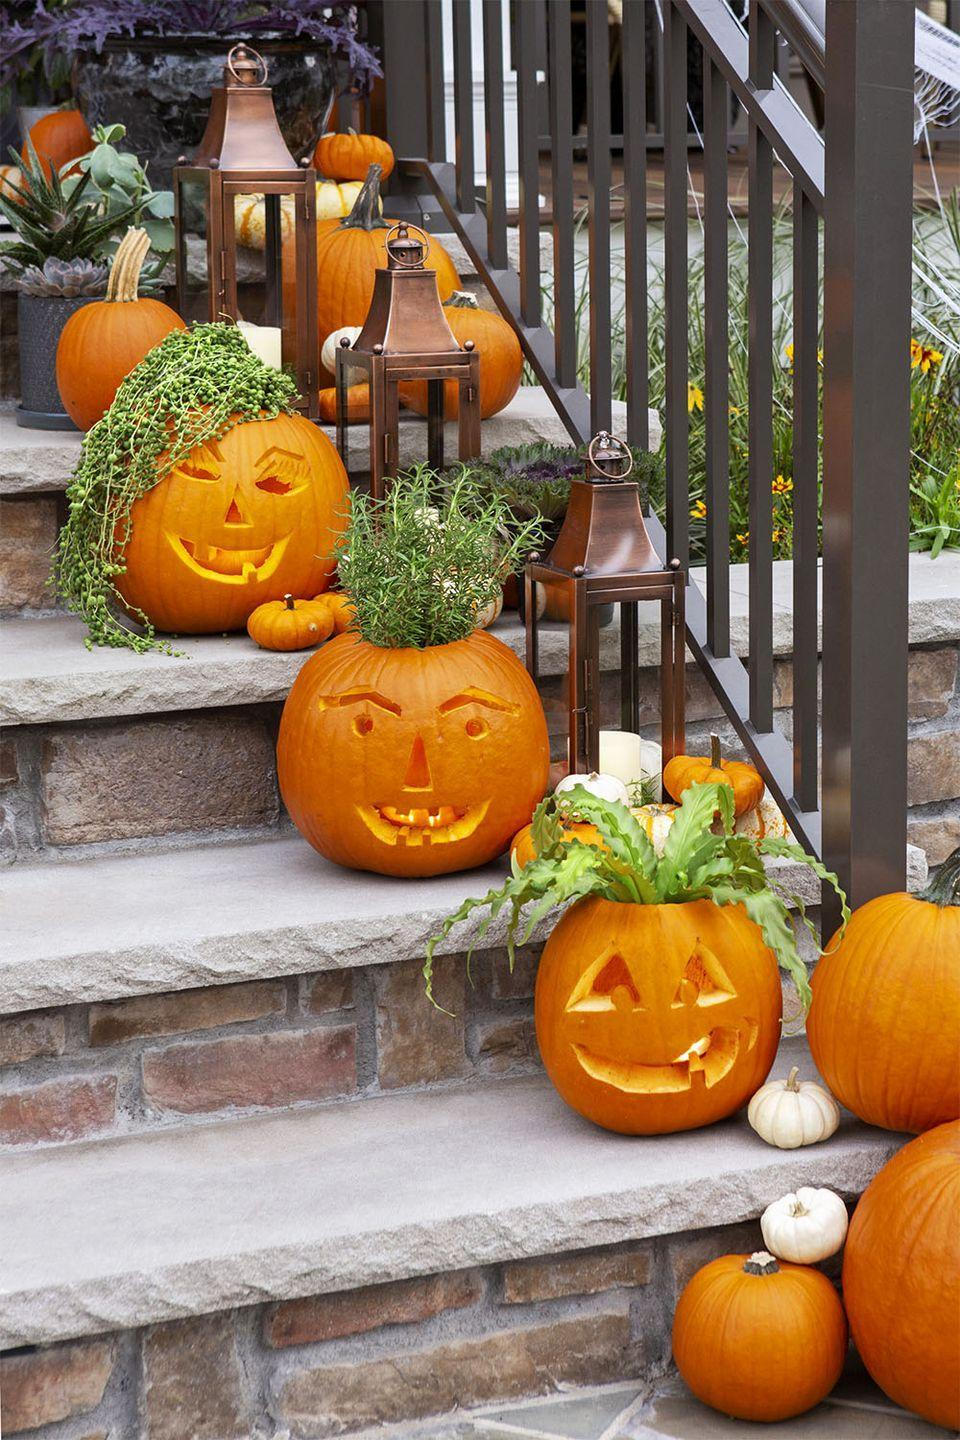 <p>Scoop out pumpkins and carve faces, then pot them when hearty green plants and herbs.</p>